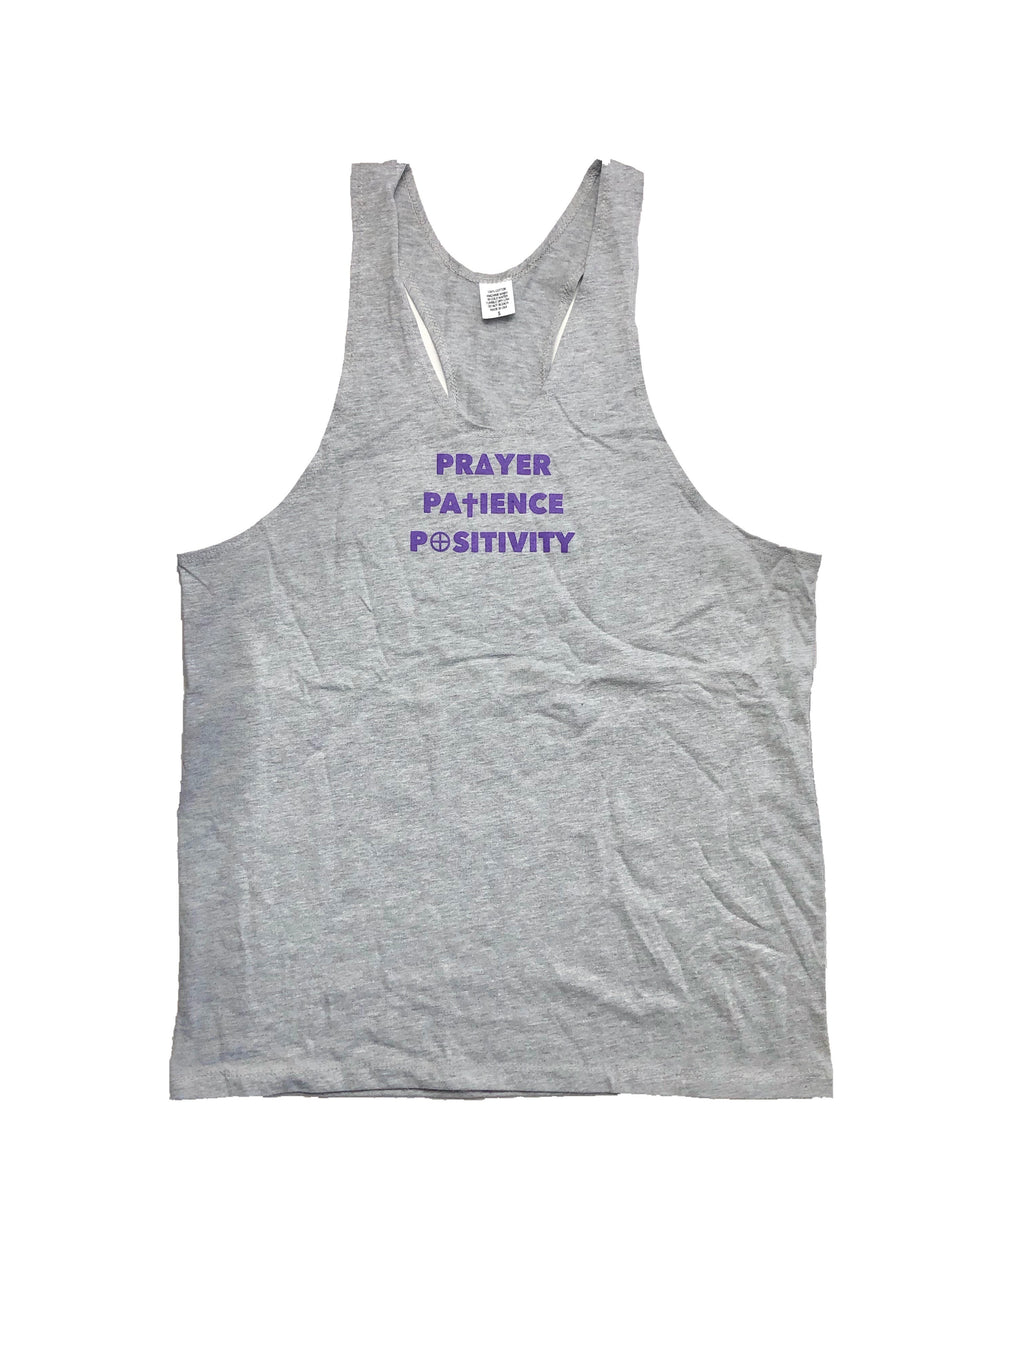 3 P's CLOTHING Athletic-Cut Workout Tank Top - 3 P's Clothing